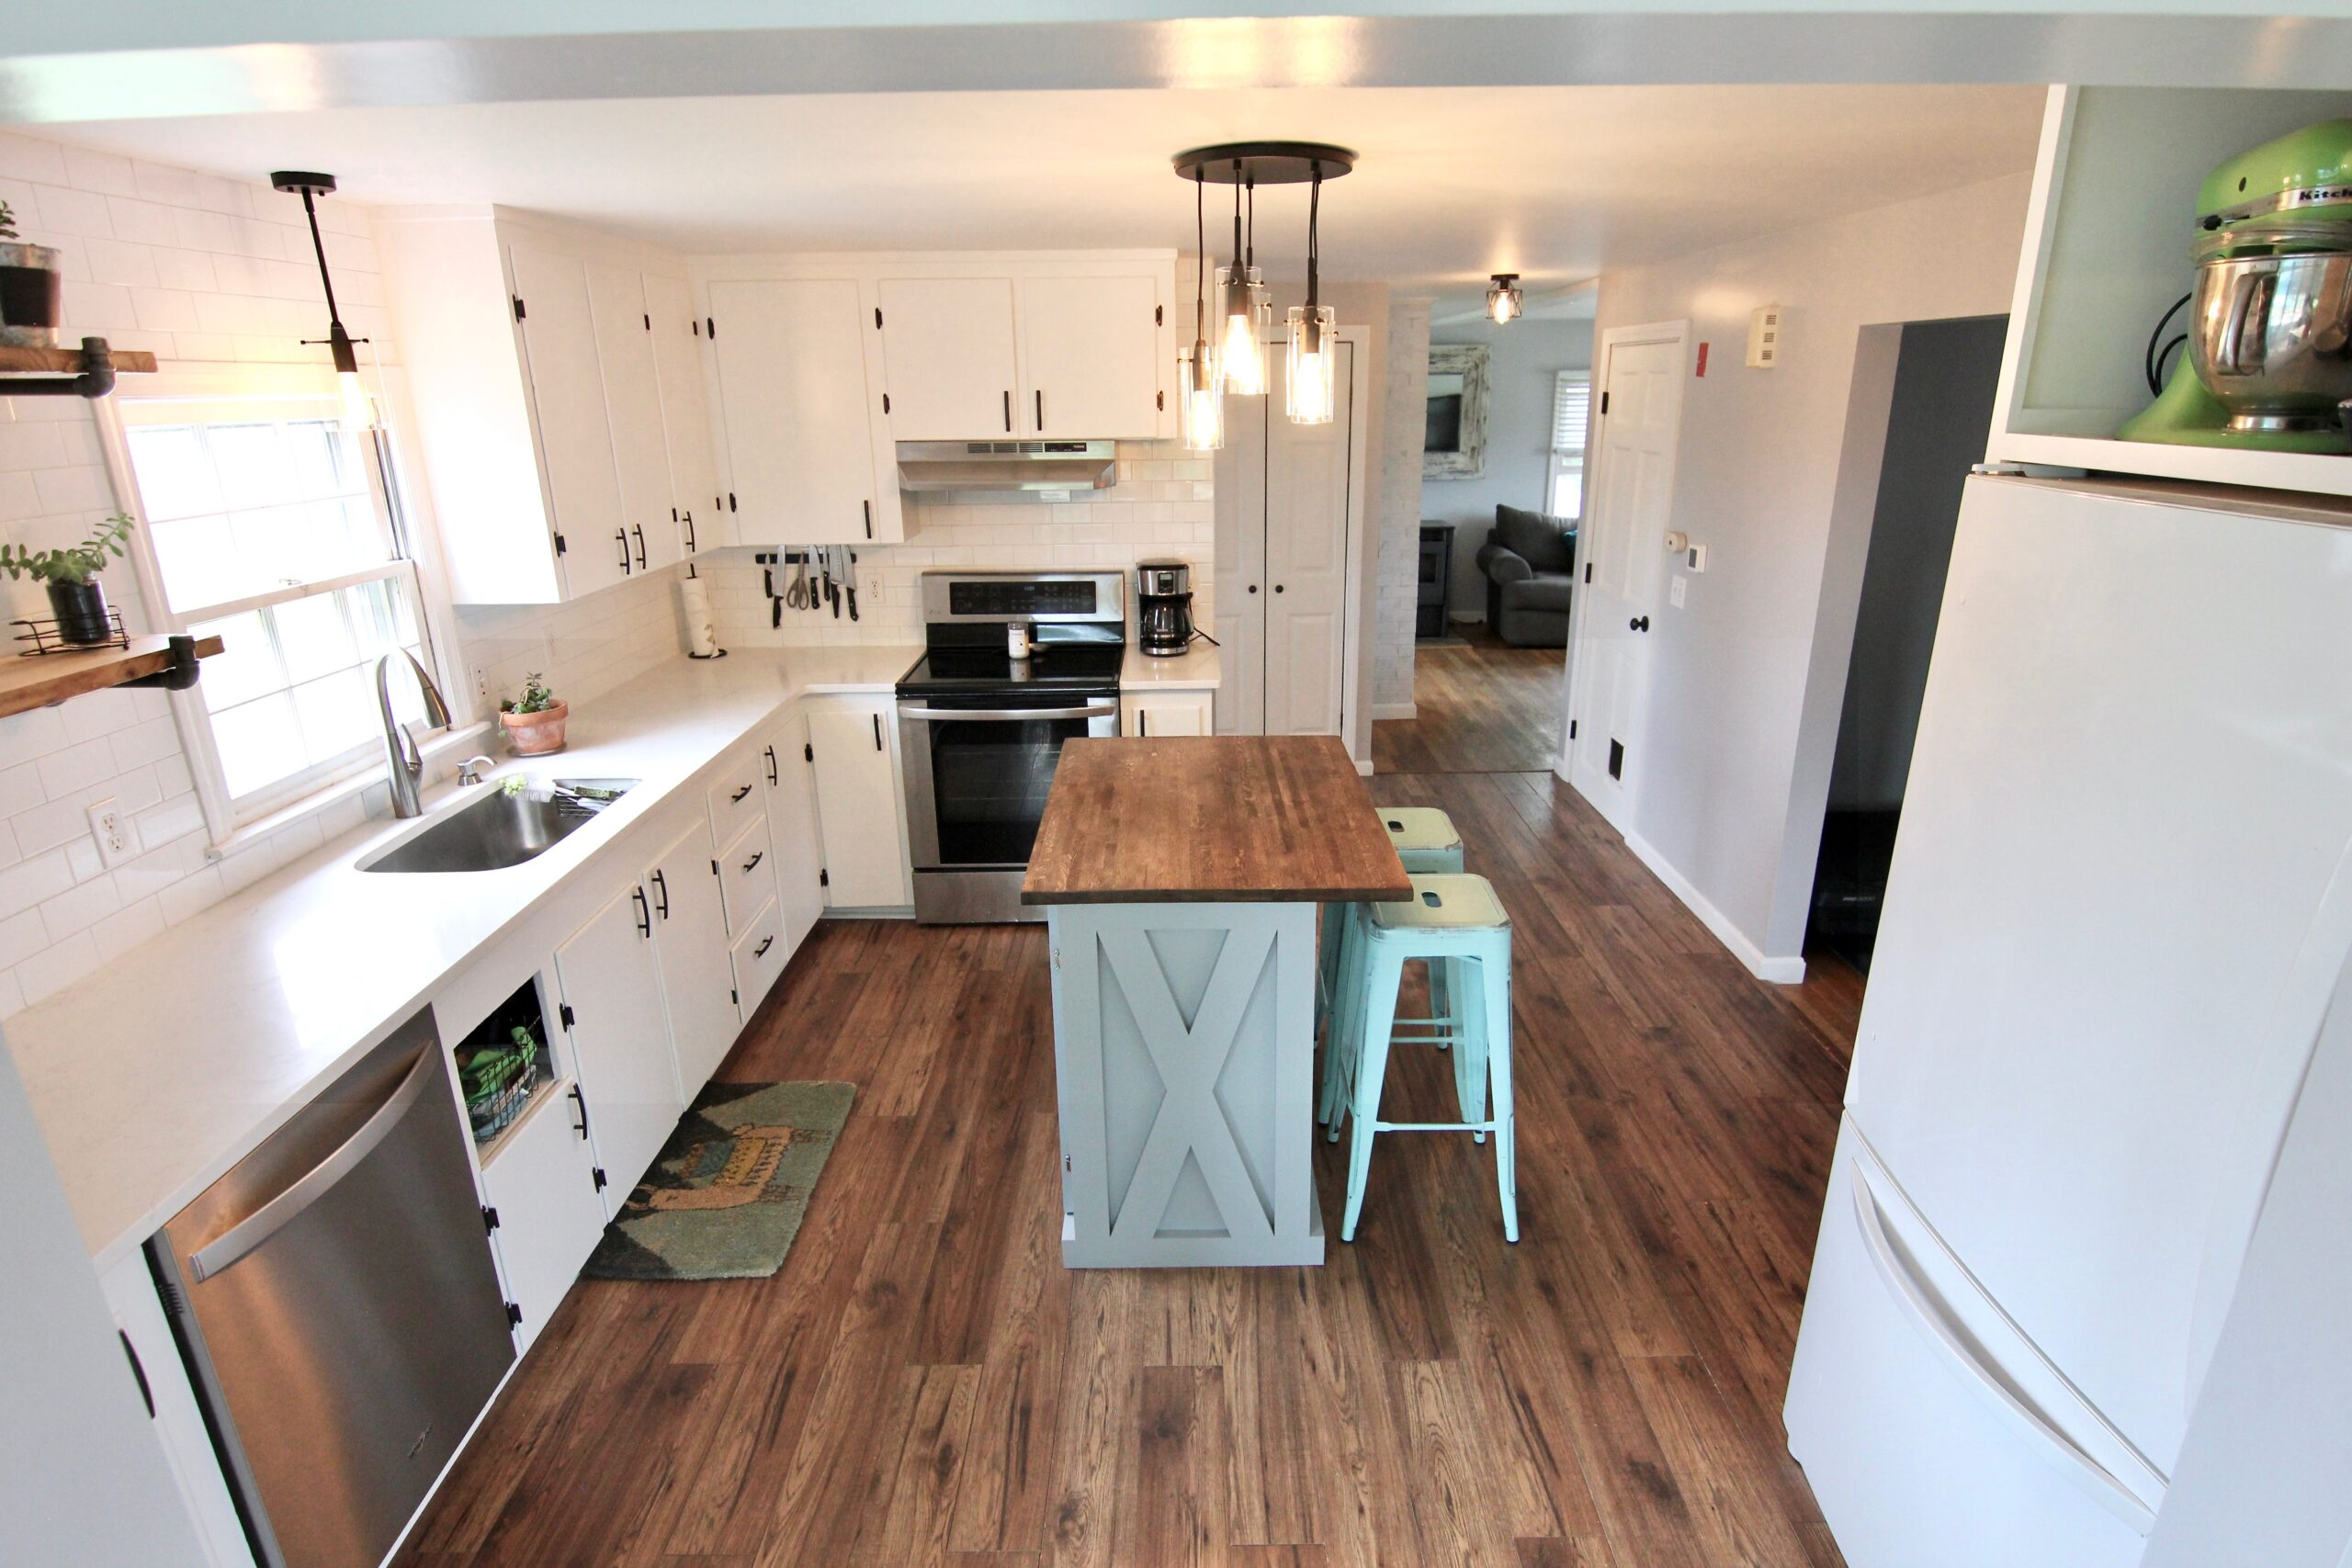 Baird Home Solutions - Kitchen Remodeling Services